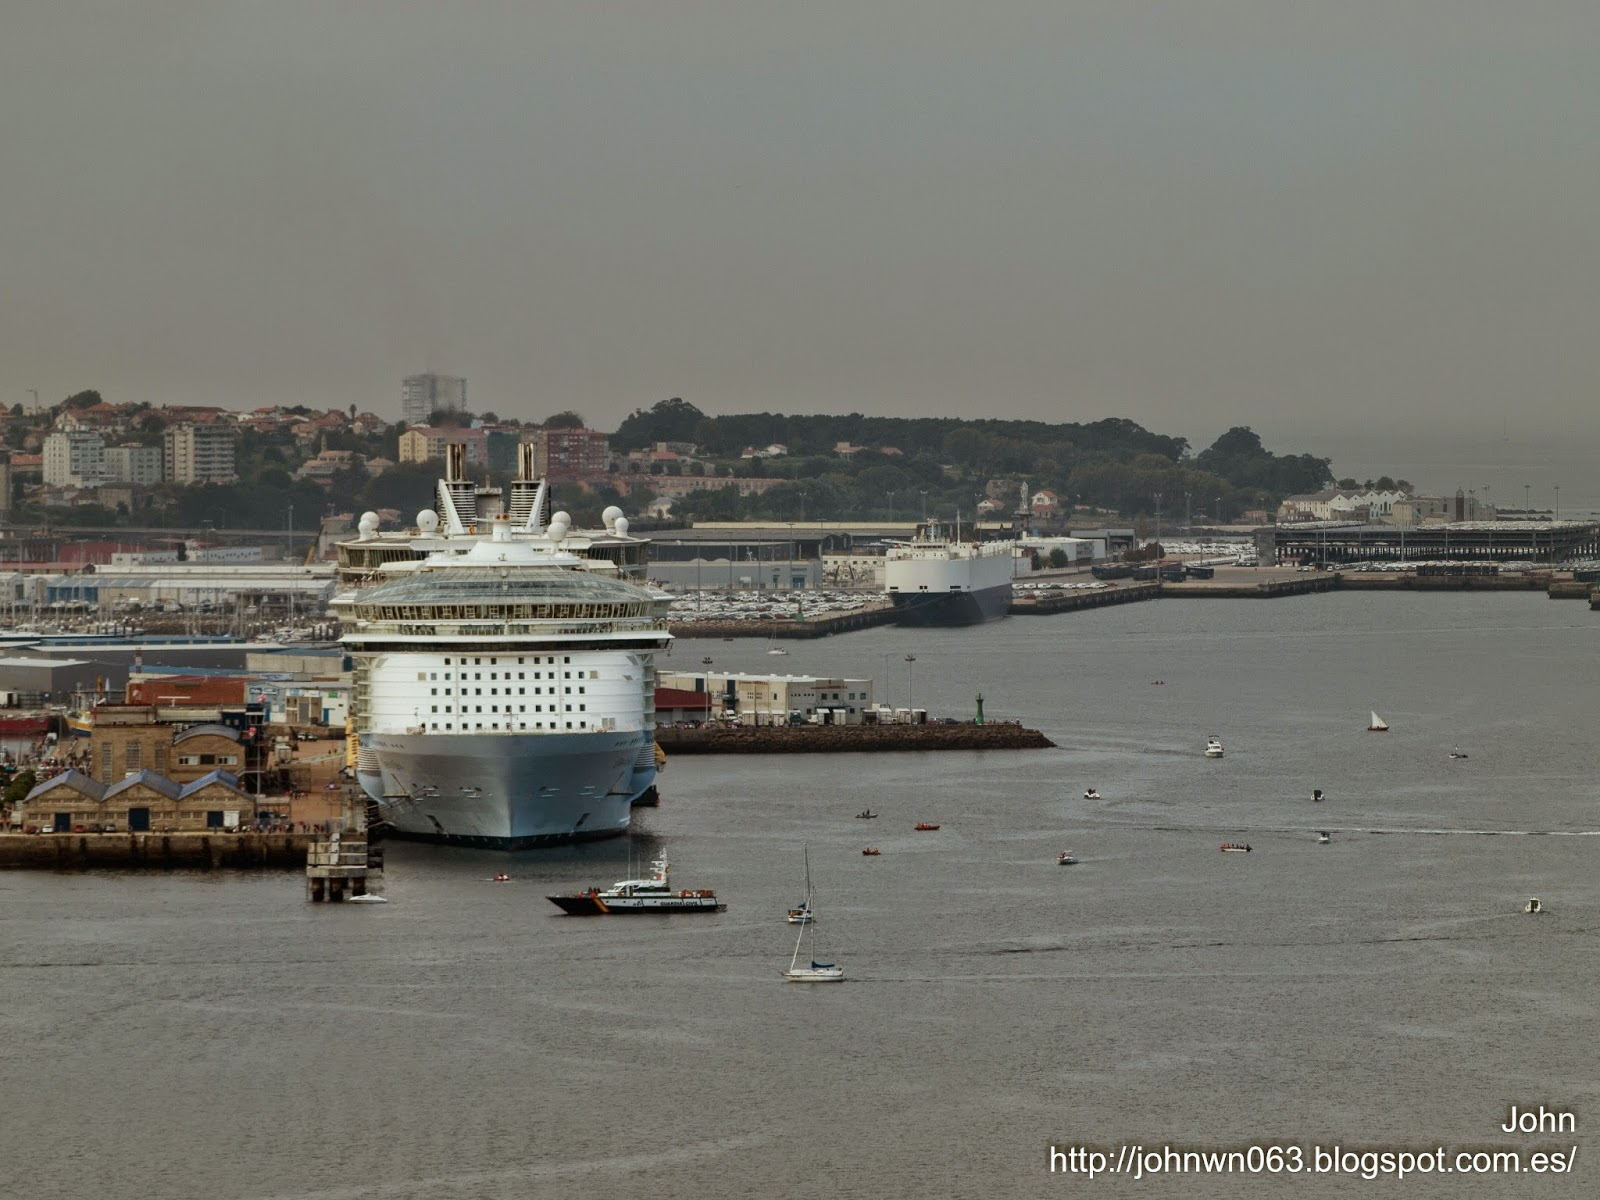 fotos de barcos, imagenes de barcos, oasis of the seas, royal caribbean, vigo